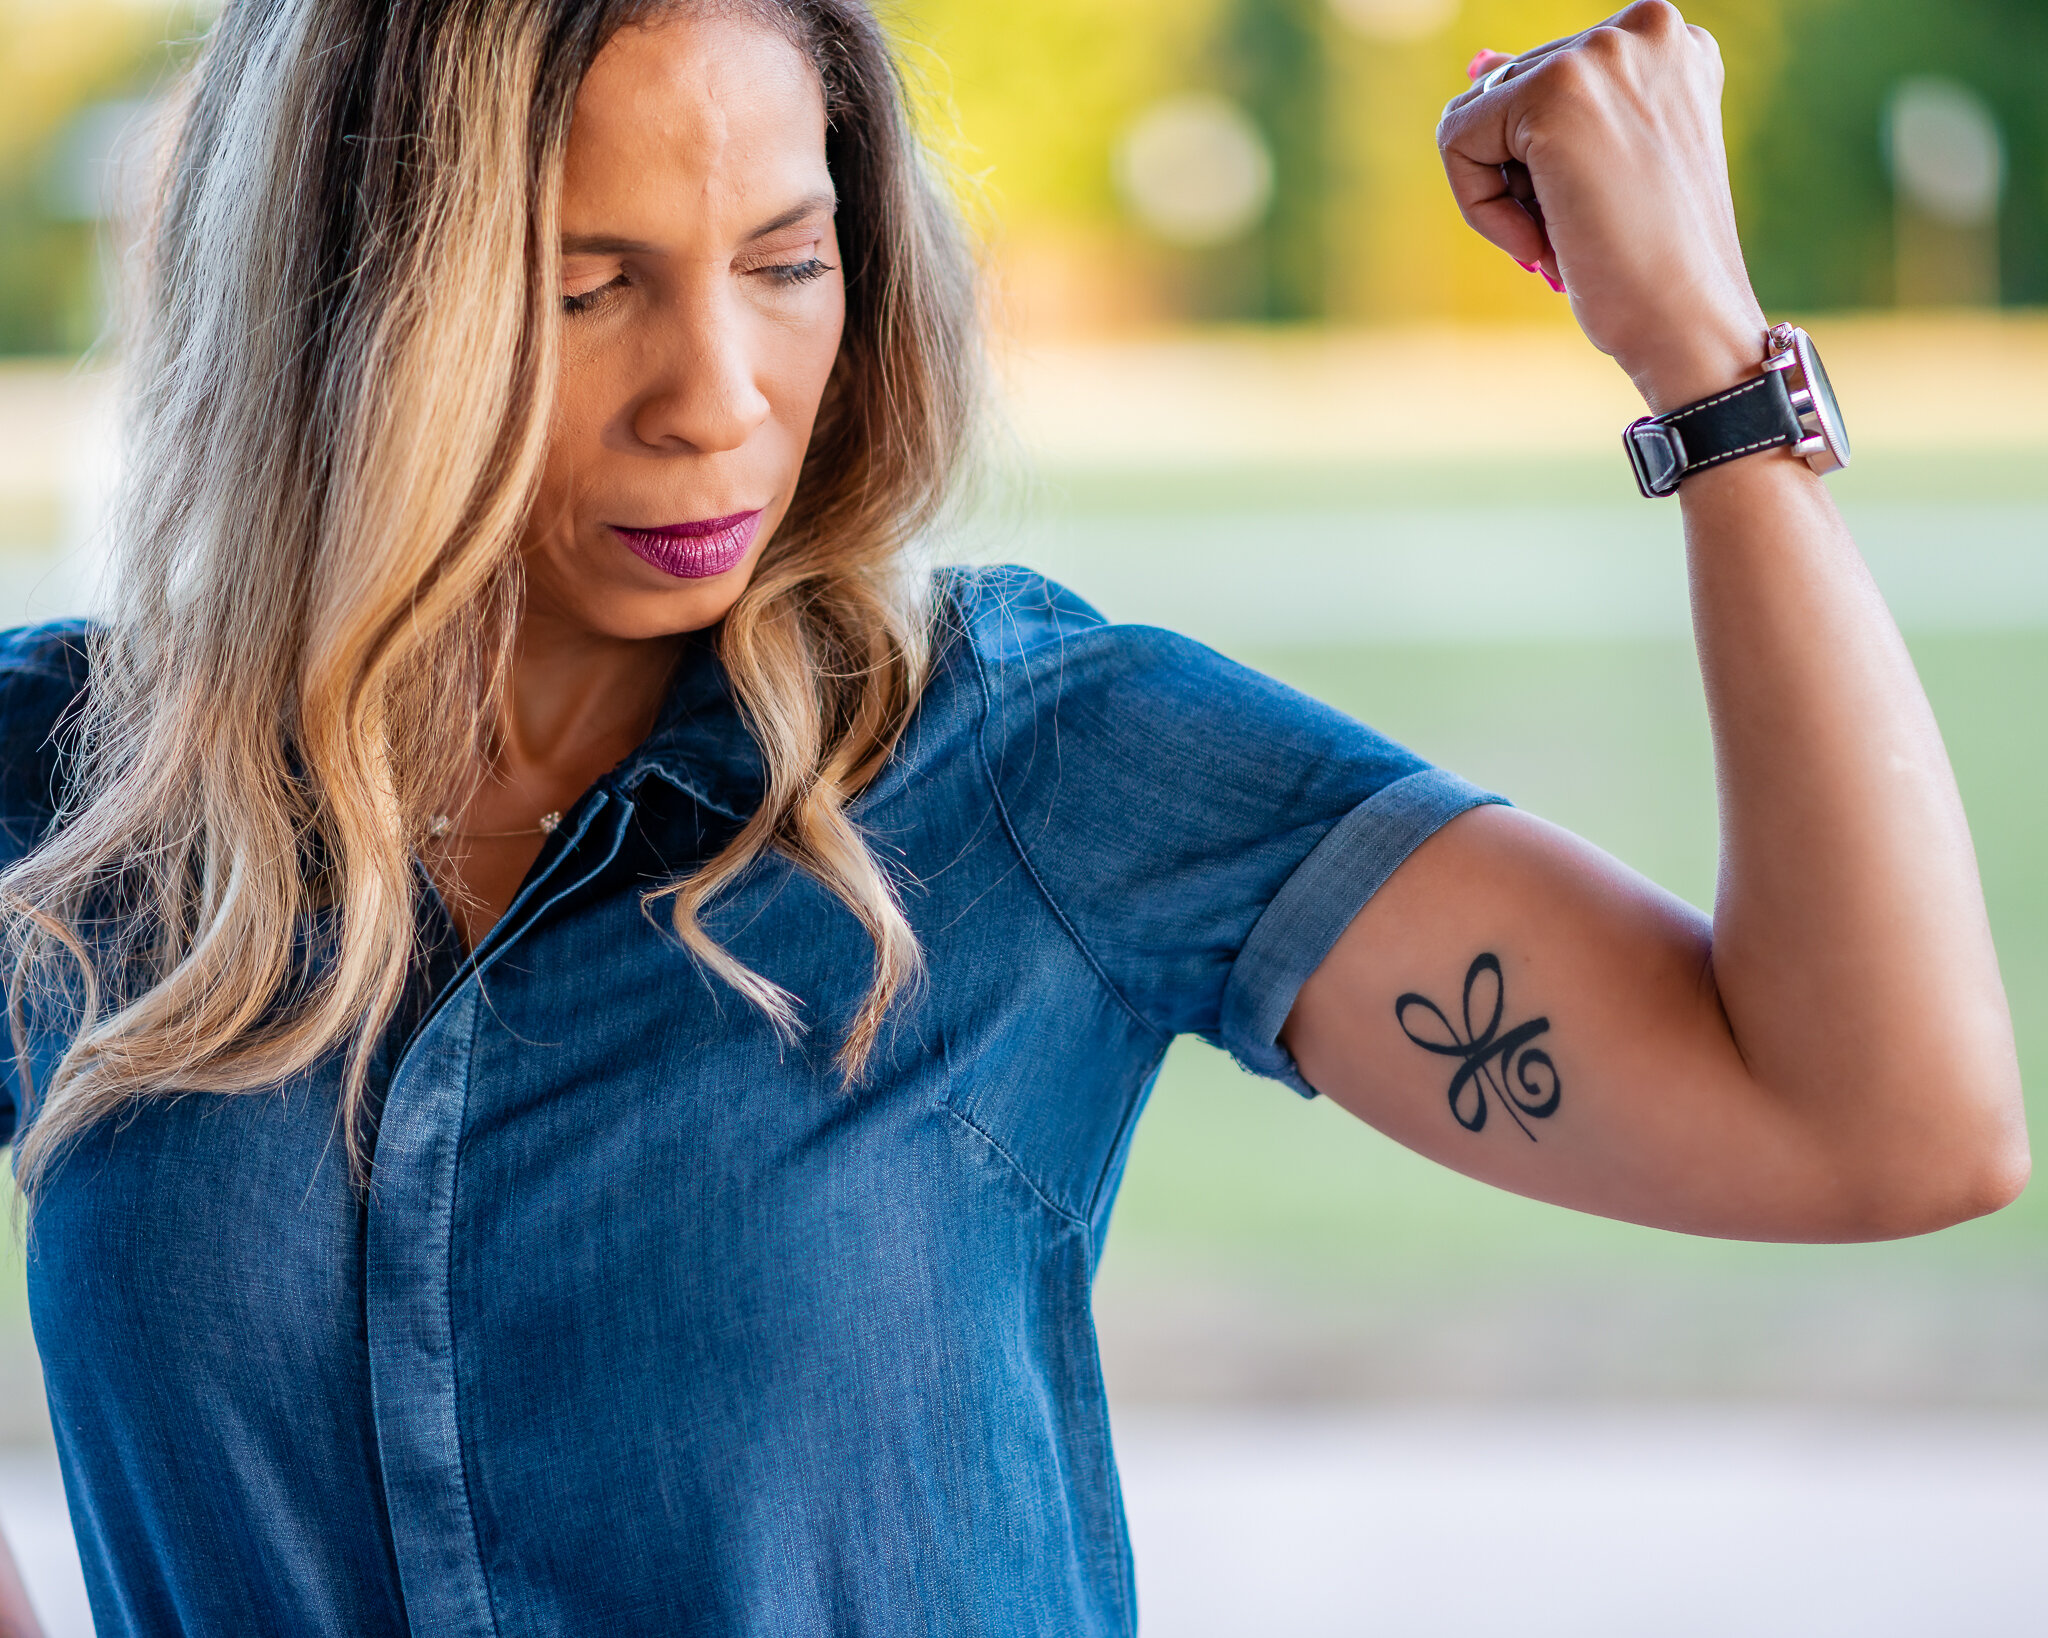 """I had the strength to not allow Breast Cancer to take over my life & a constant reminder that I am stronger mentally""The meaning behind Irene's Celtic Symbol for Strength tattoo -"